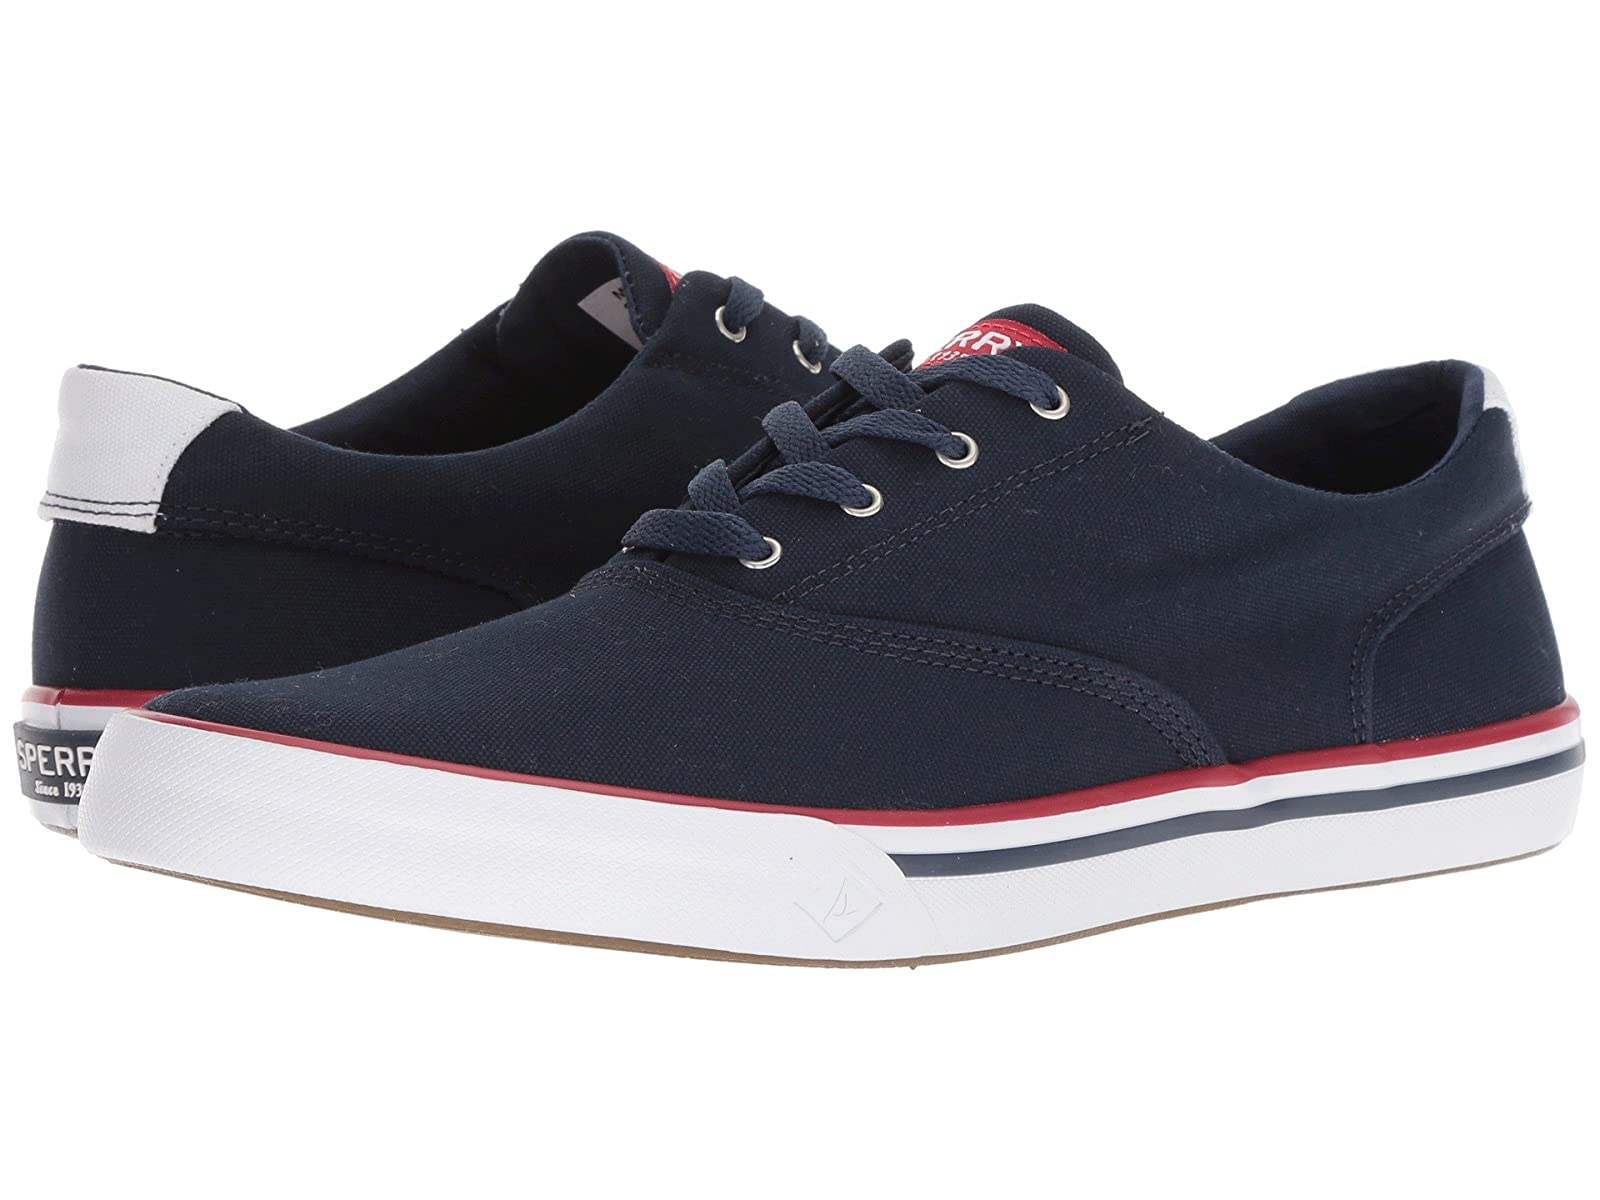 Sperry Striper II CVO NauticalAtmospheric grades have affordable shoes